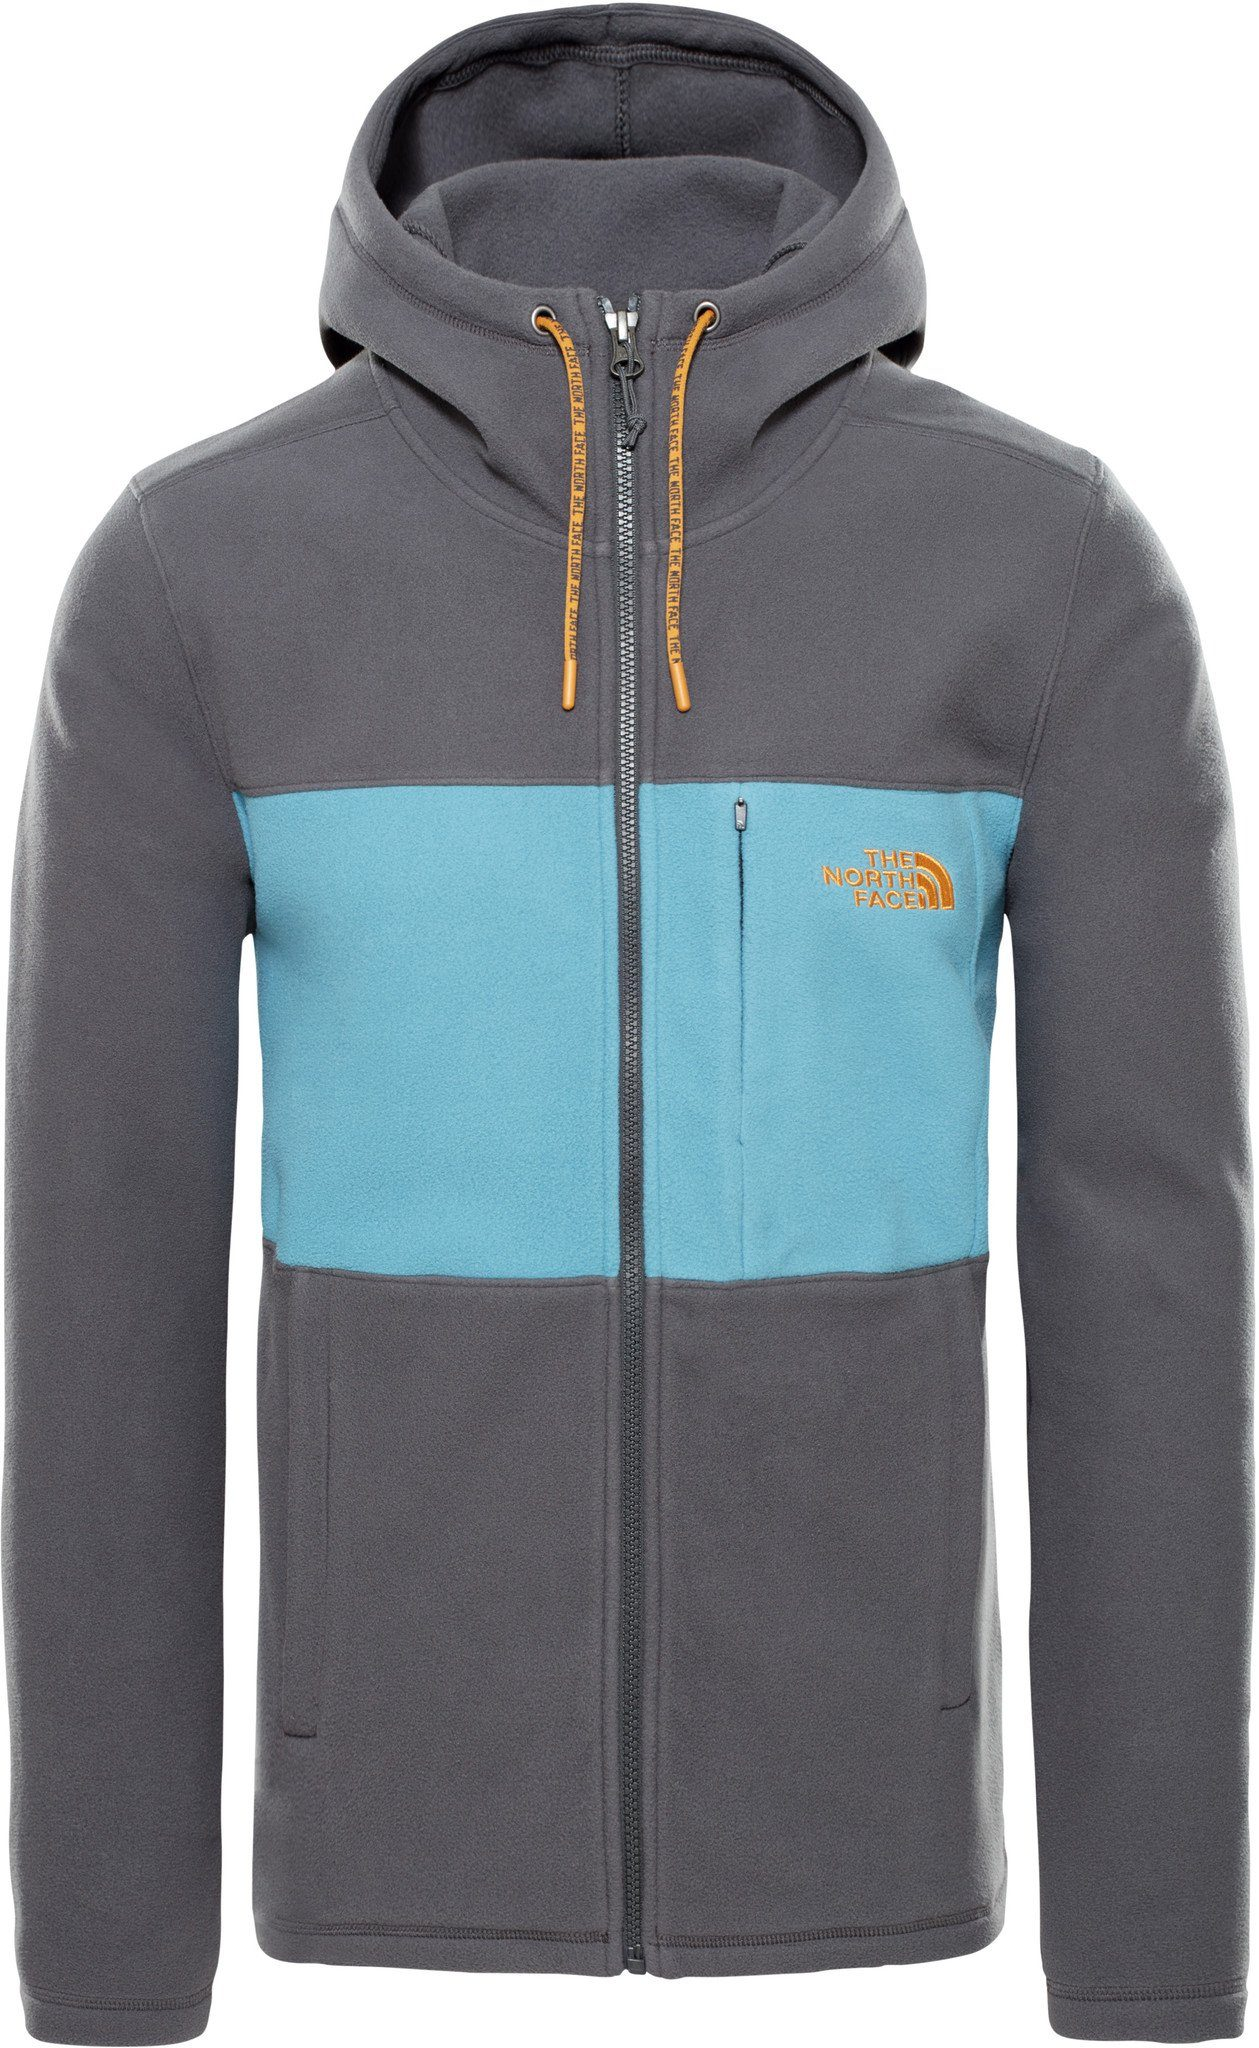 The North Face Outdoorjacke »Blocked TKA 100 Full Zip Hoody Men«